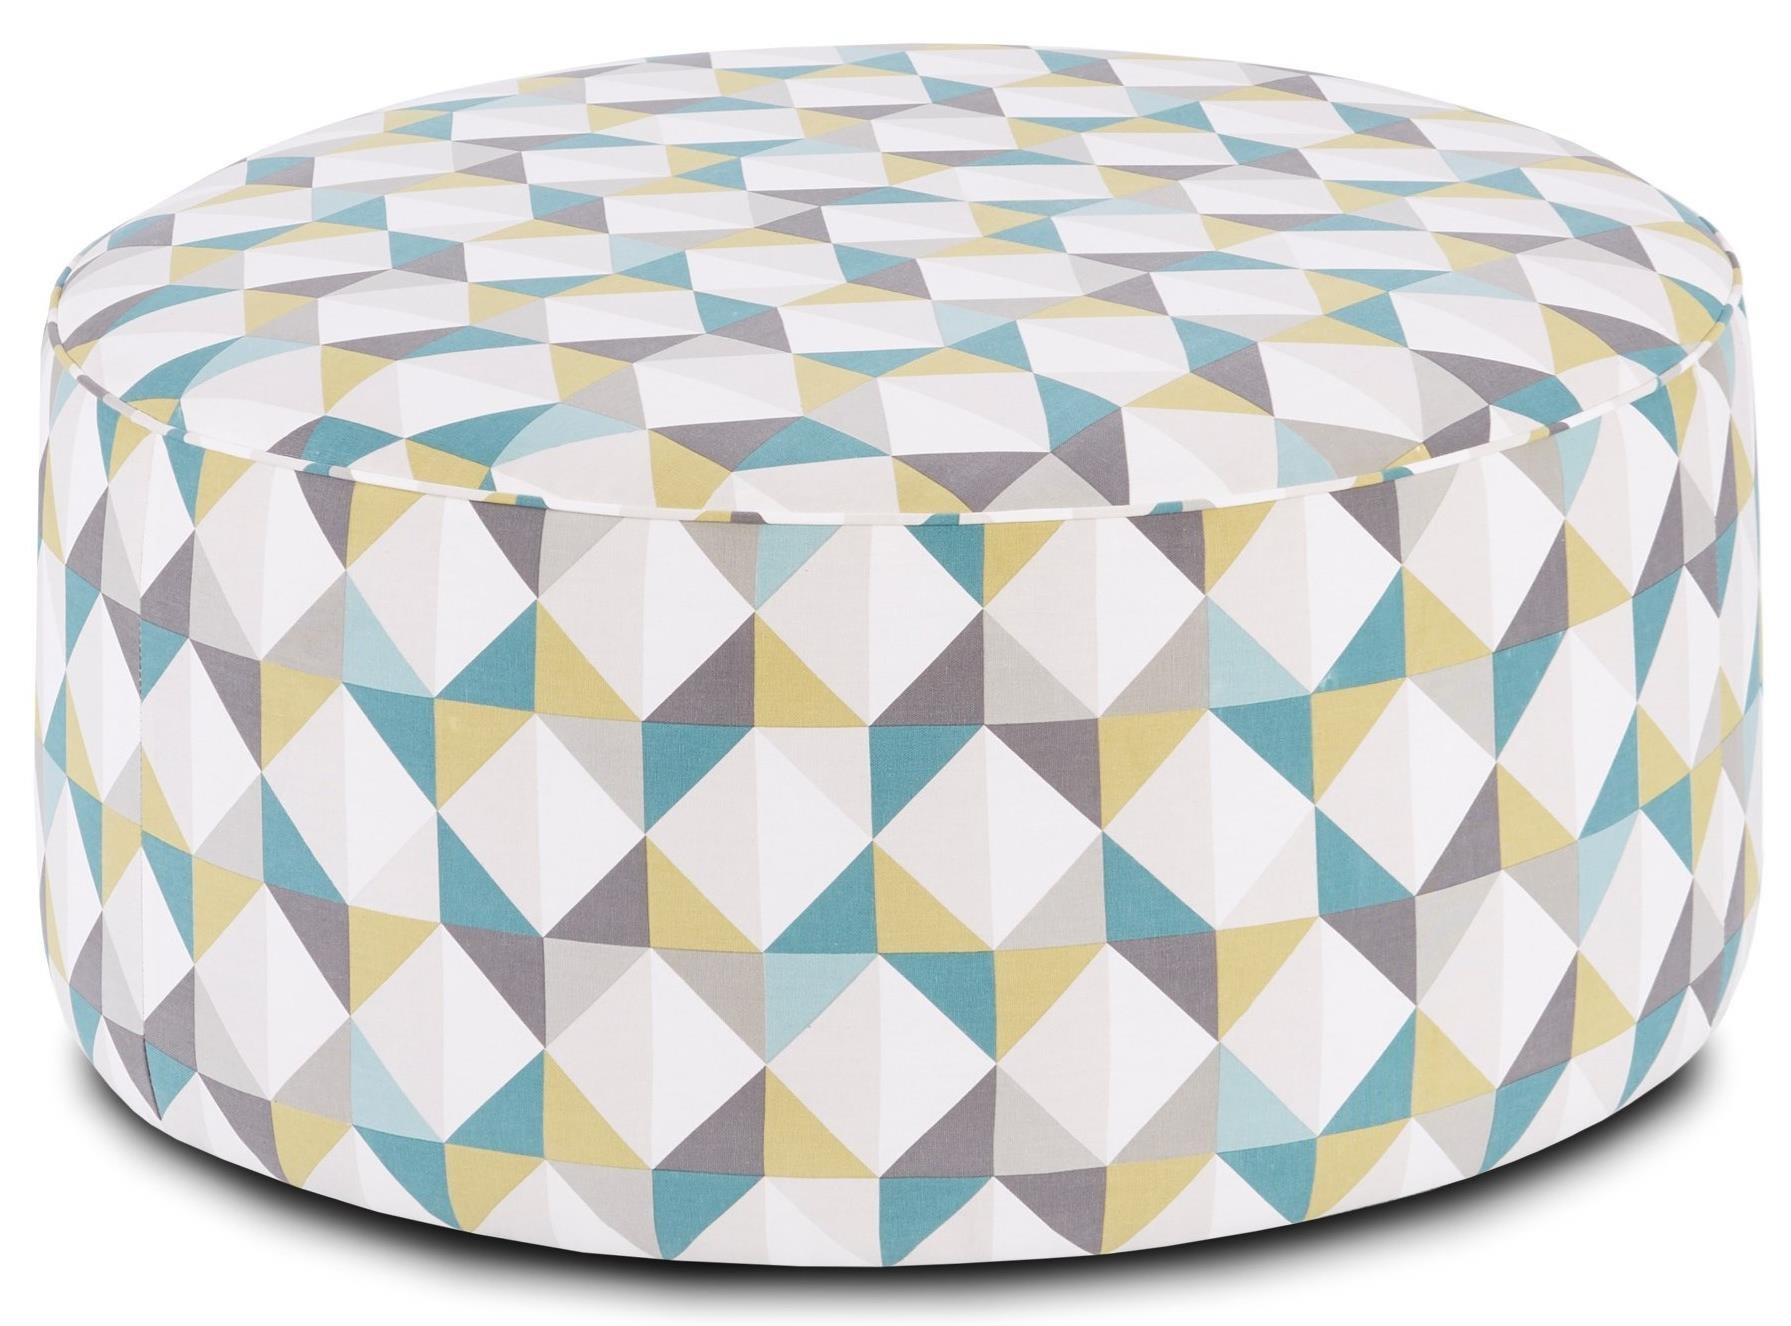 41CW-00KP TNT NICKEL (REVOLUTION) Cocktail Ottoman by Fusion Furniture at Story & Lee Furniture